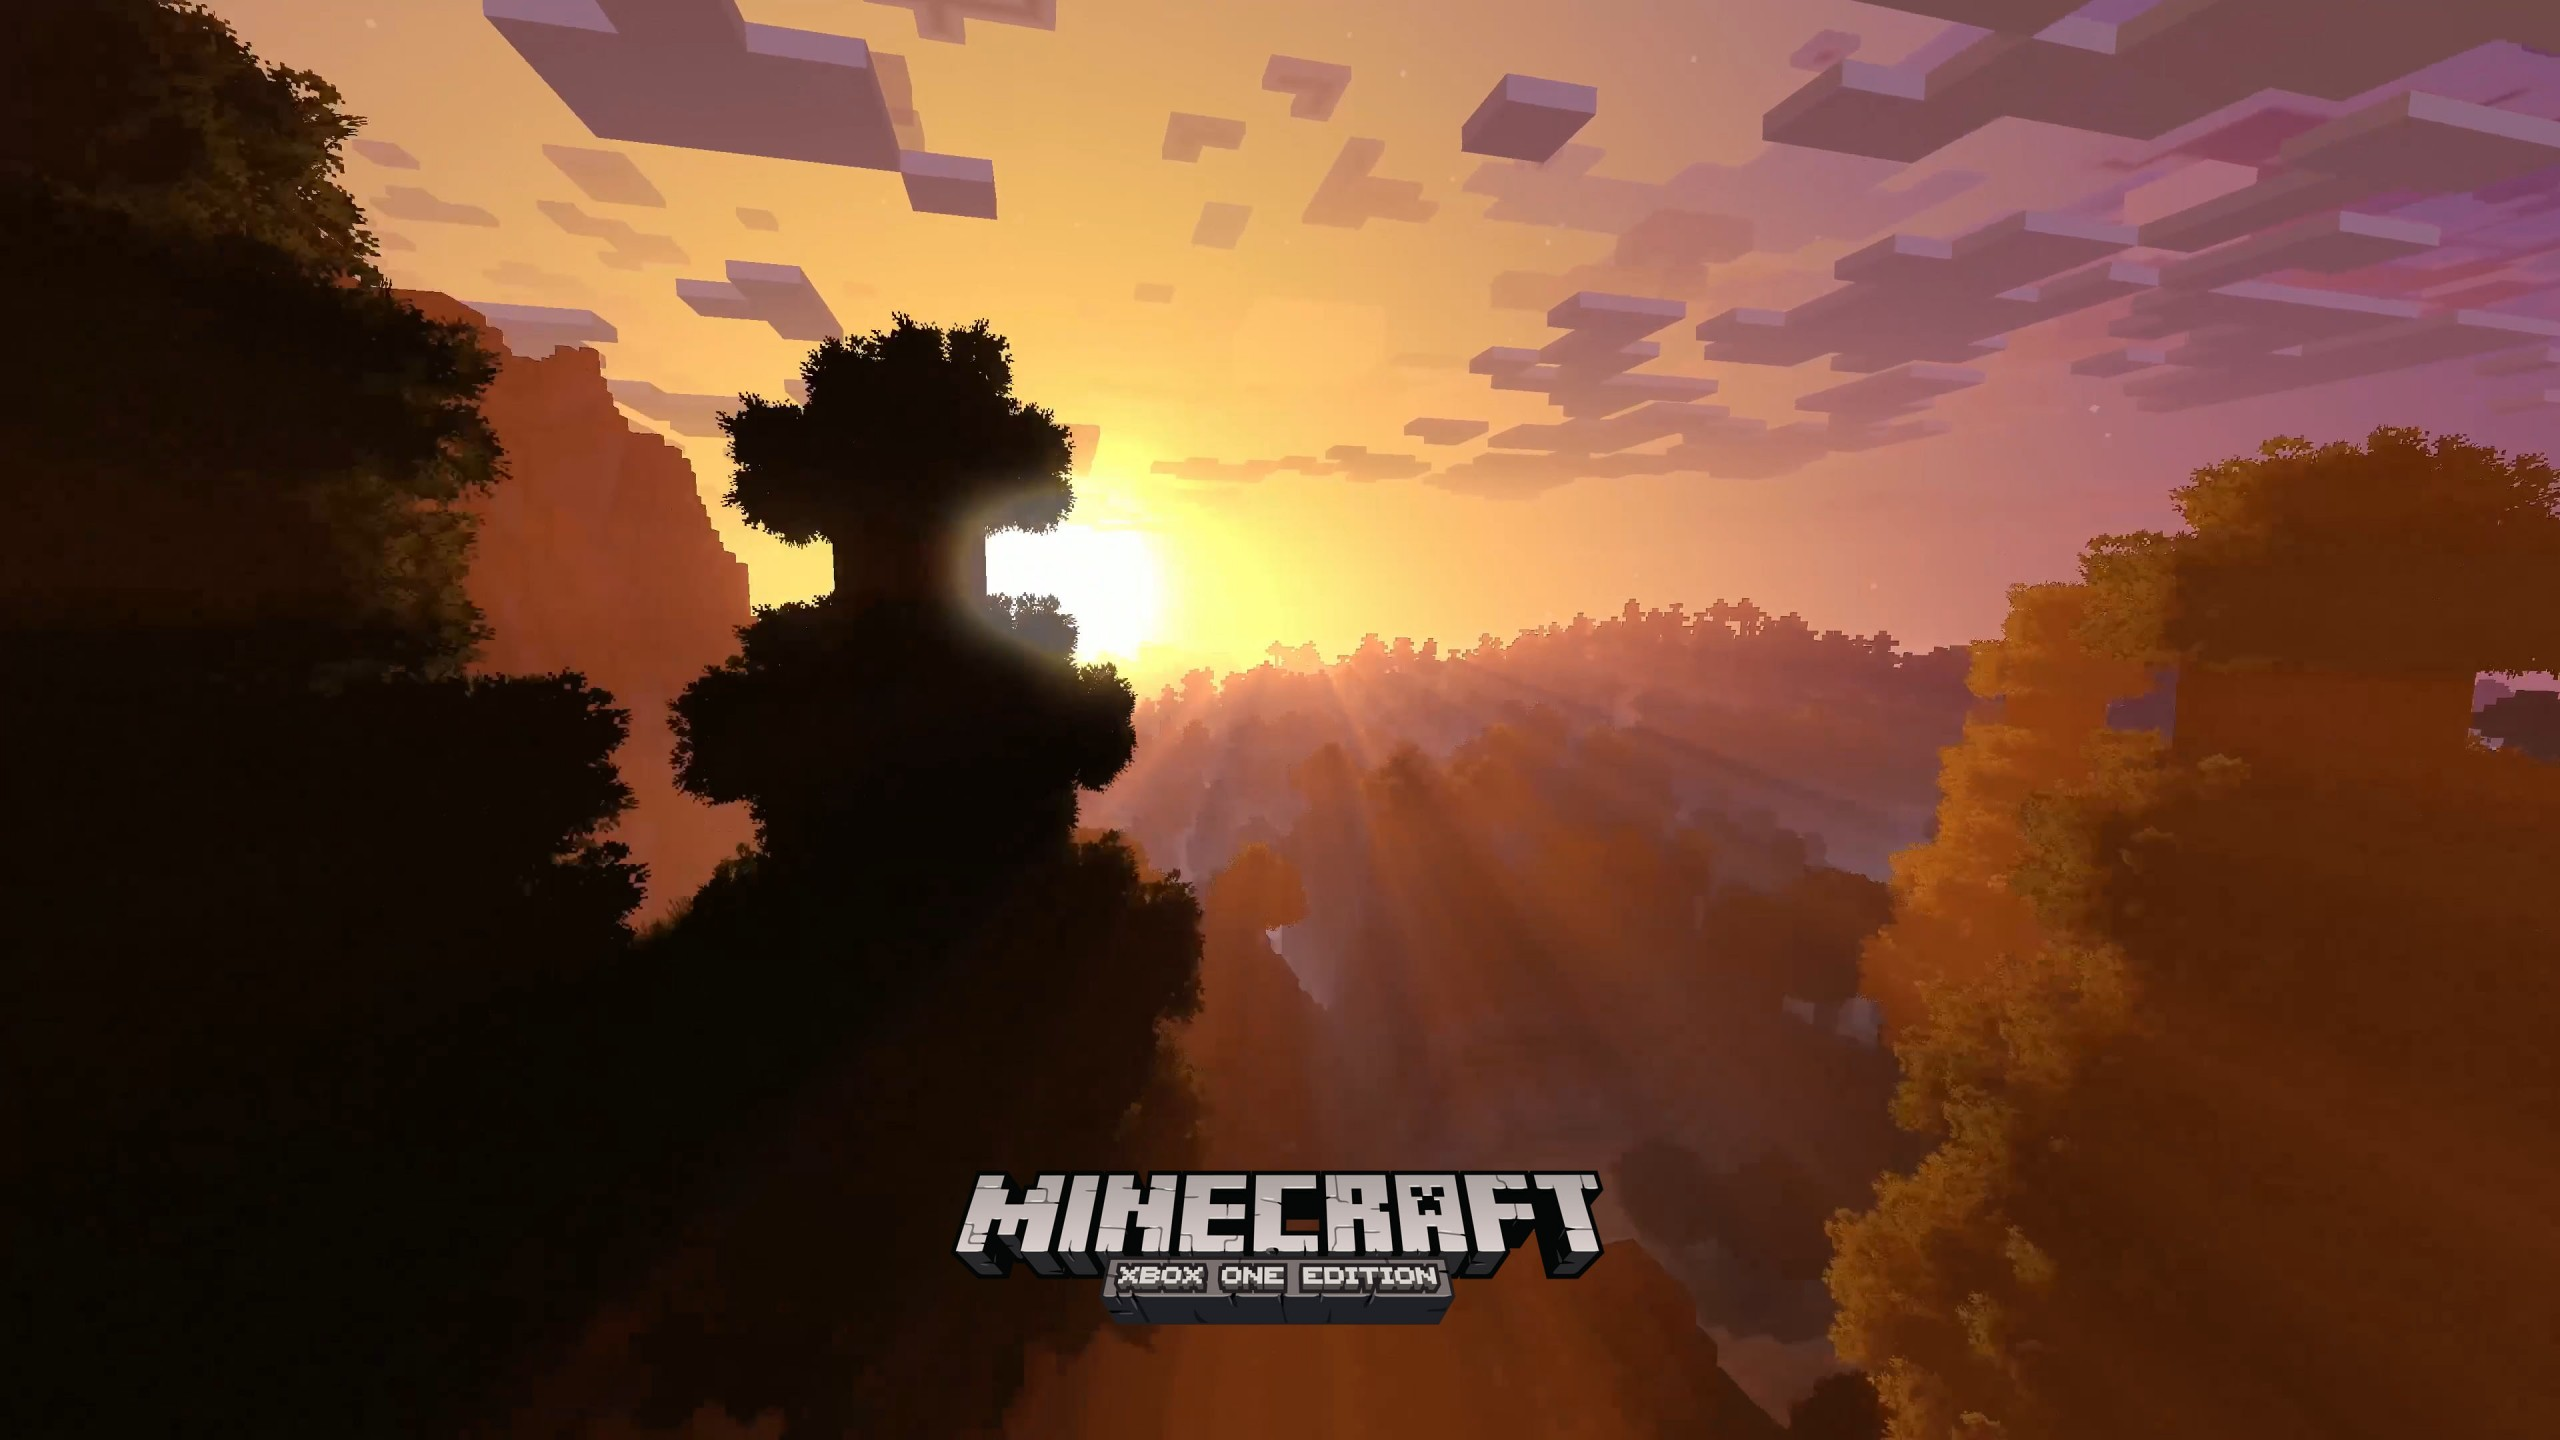 More About Music Poster Background High Resolution Update: Wallpaper Minecraft 4k Edition, E3 2017, XBox One X